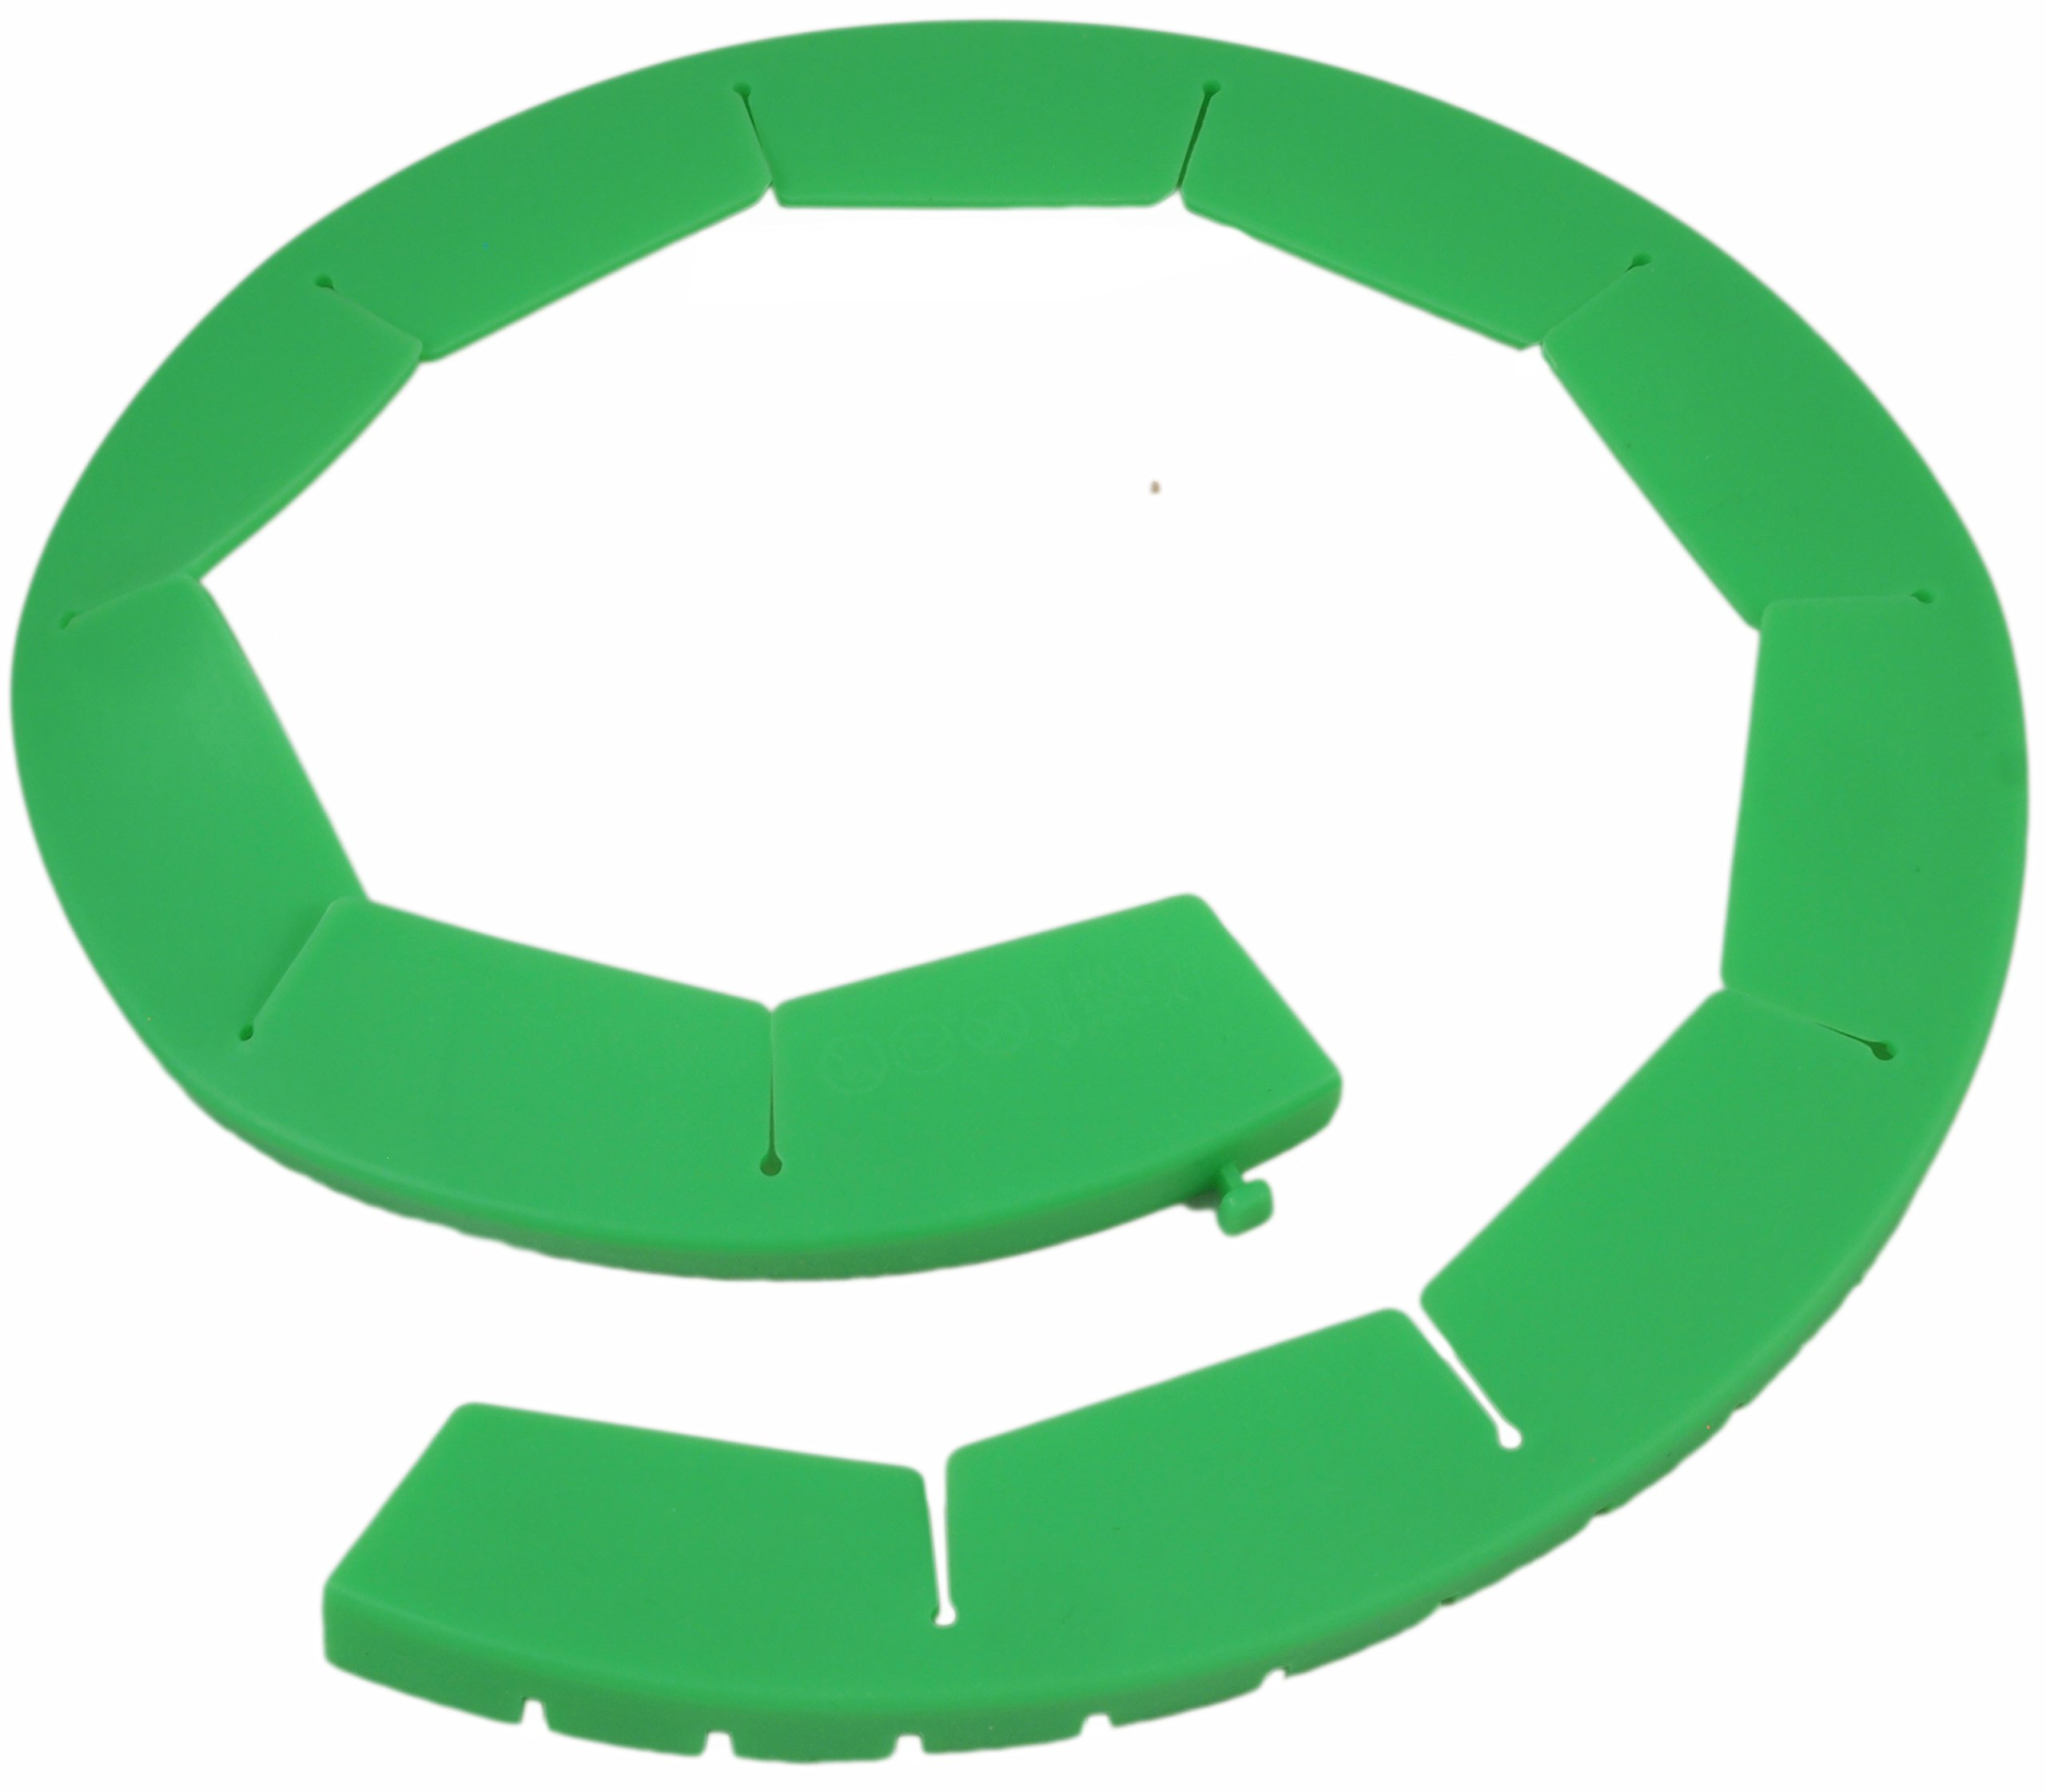 Silicone Pie Crust Shields (2 pack), Adjustable Pie Protectors, Green by Cornucopia Brands (Image #2)